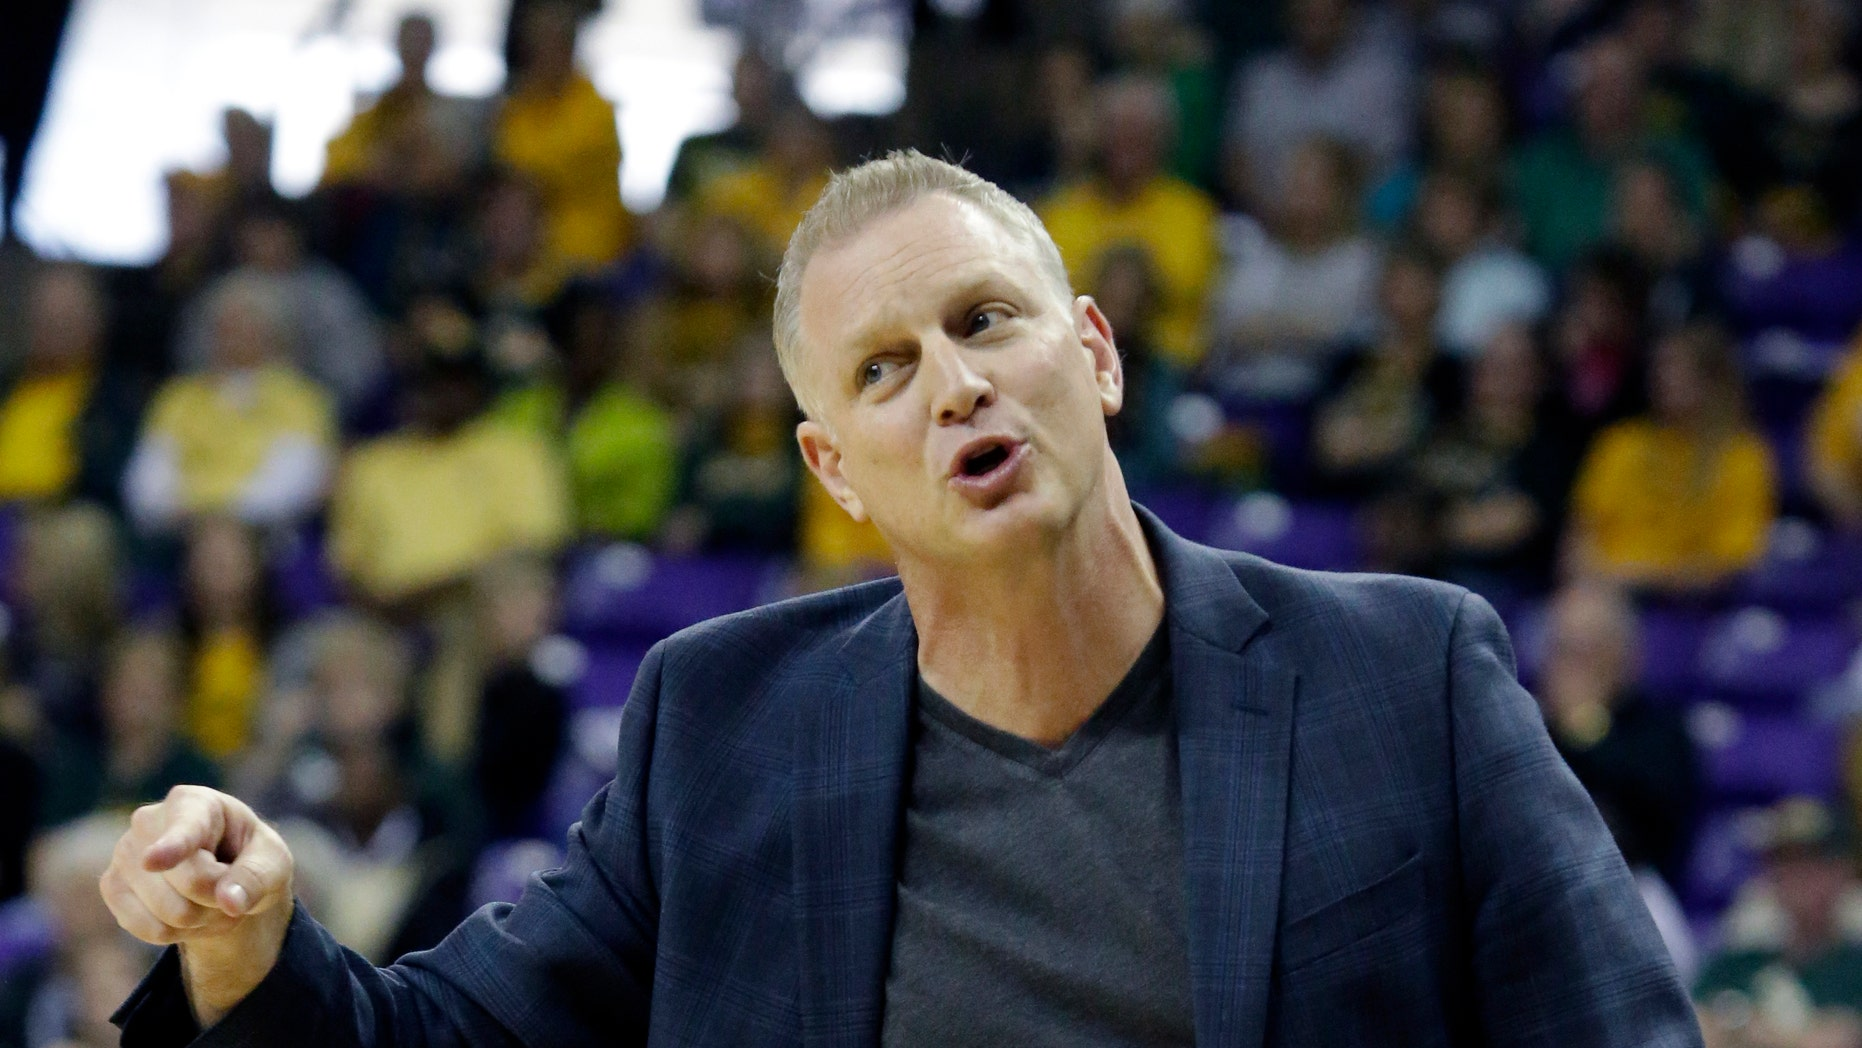 TCU head coach Jeff Mittie  gestures from the sideline during the first half of an NCAA college basketball game against the Baylor Saturday, Feb. 22, 2014, in Fort Worth, Texas. (AP Photo/LM Otero)